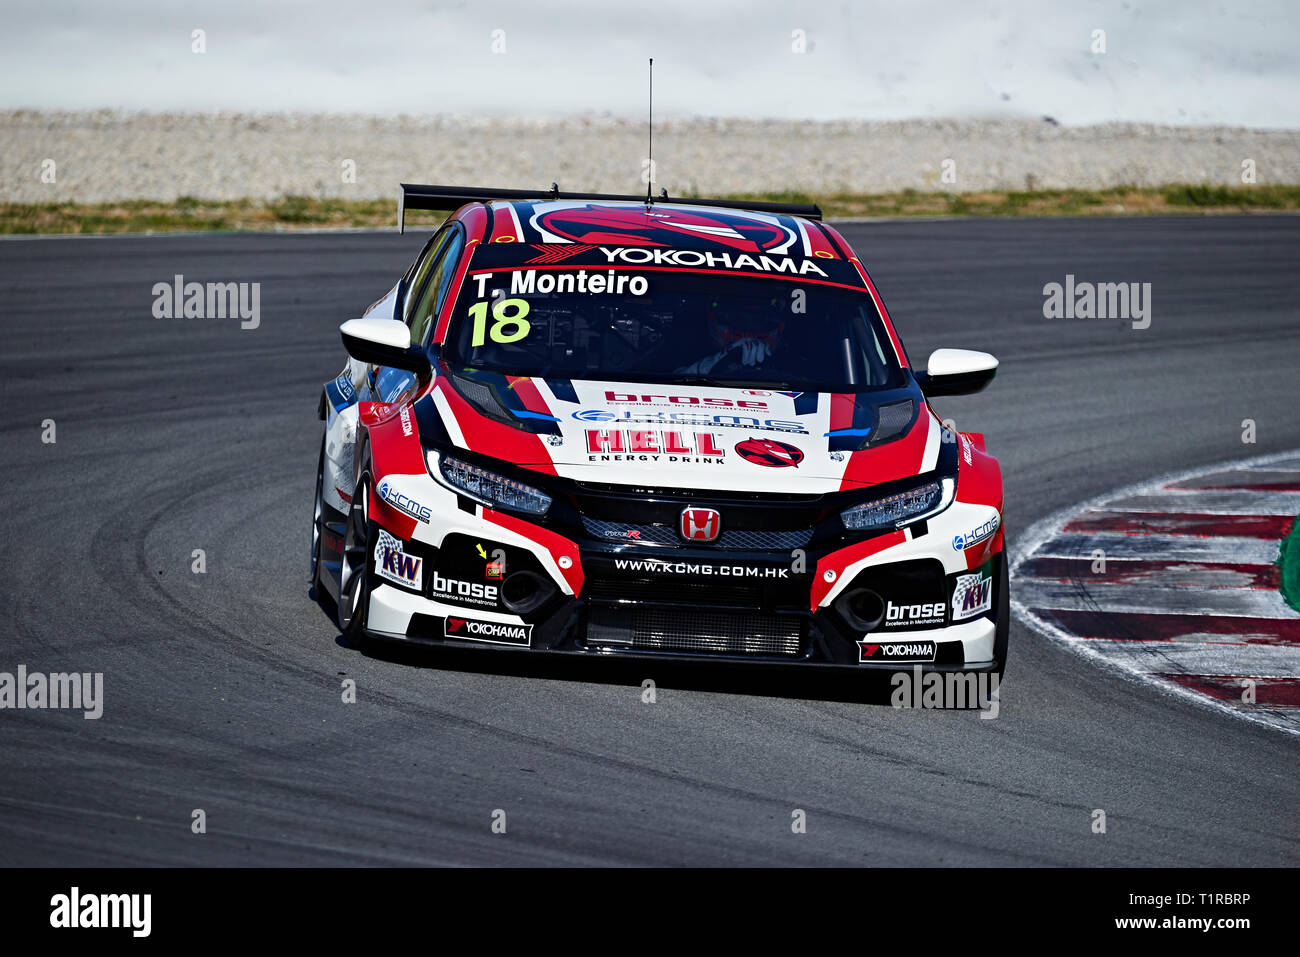 Barcelona, Spain. 28 March, 2019. Tiago Monteiro (PRT), KCMG , Honda Civic Type R TCR in action during the WTCR official test at the Circuit of Catalunya. Credit: Pablo Guillen/Alamy Live News - Stock Image